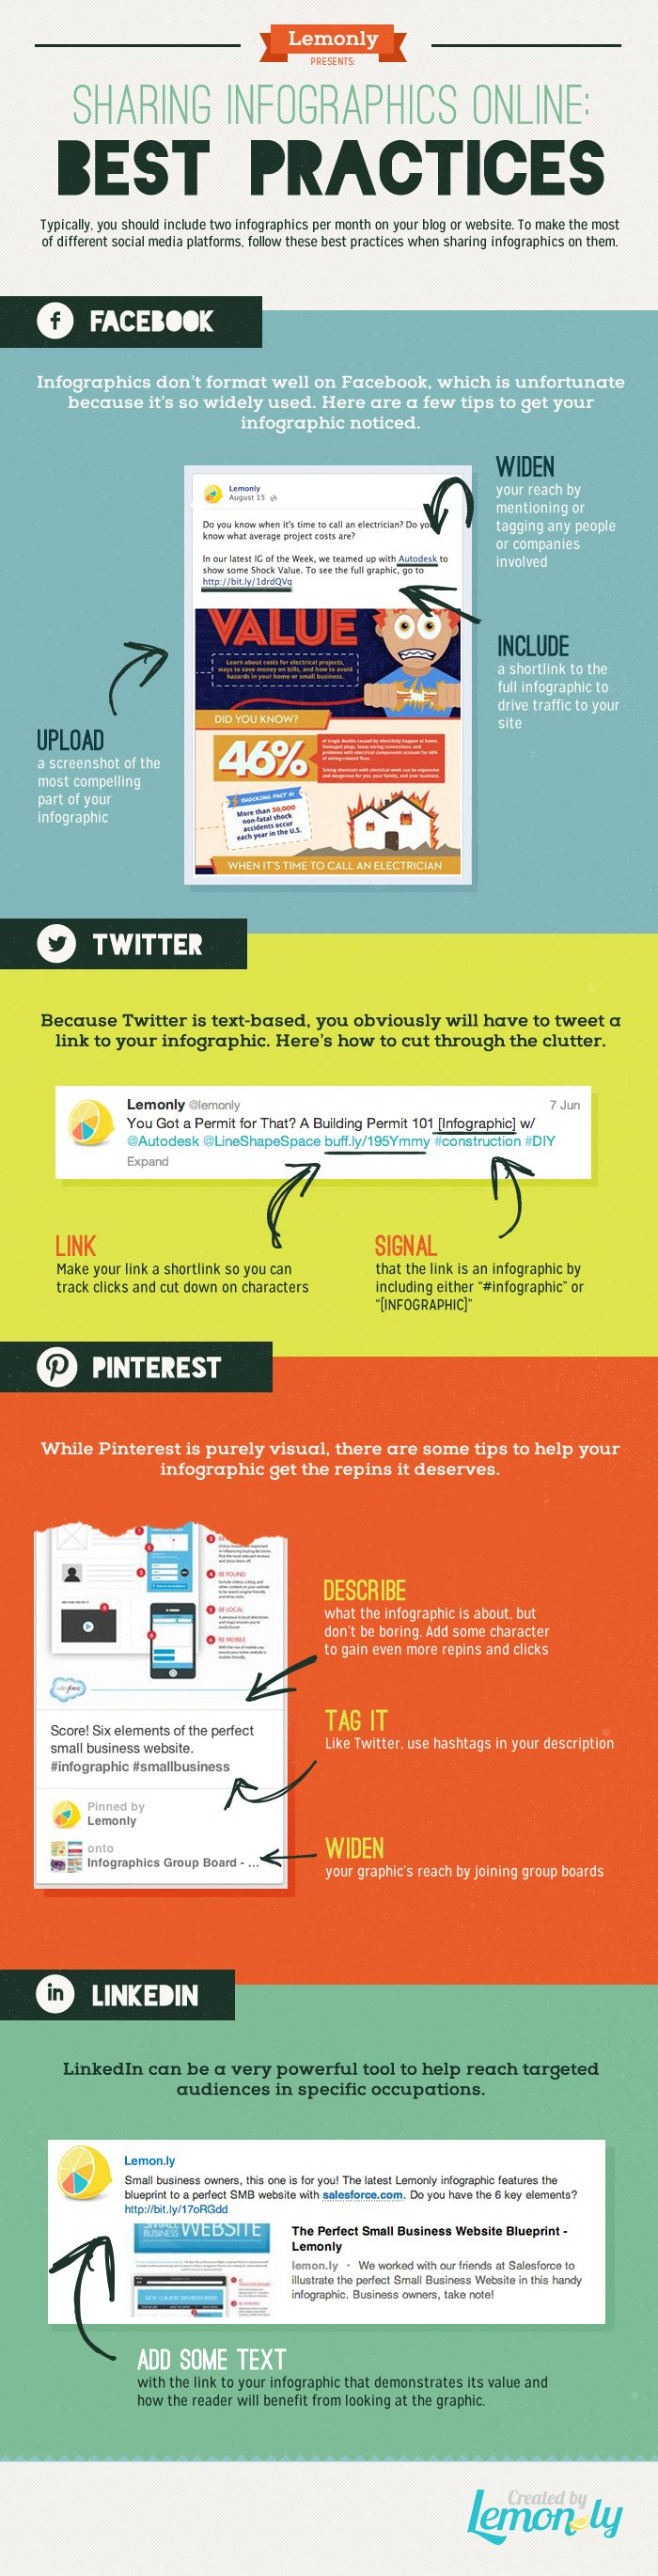 Social Networks Guide for Sharing #Infographics [#infographic]  #SocialMedia   www.scribetree.com